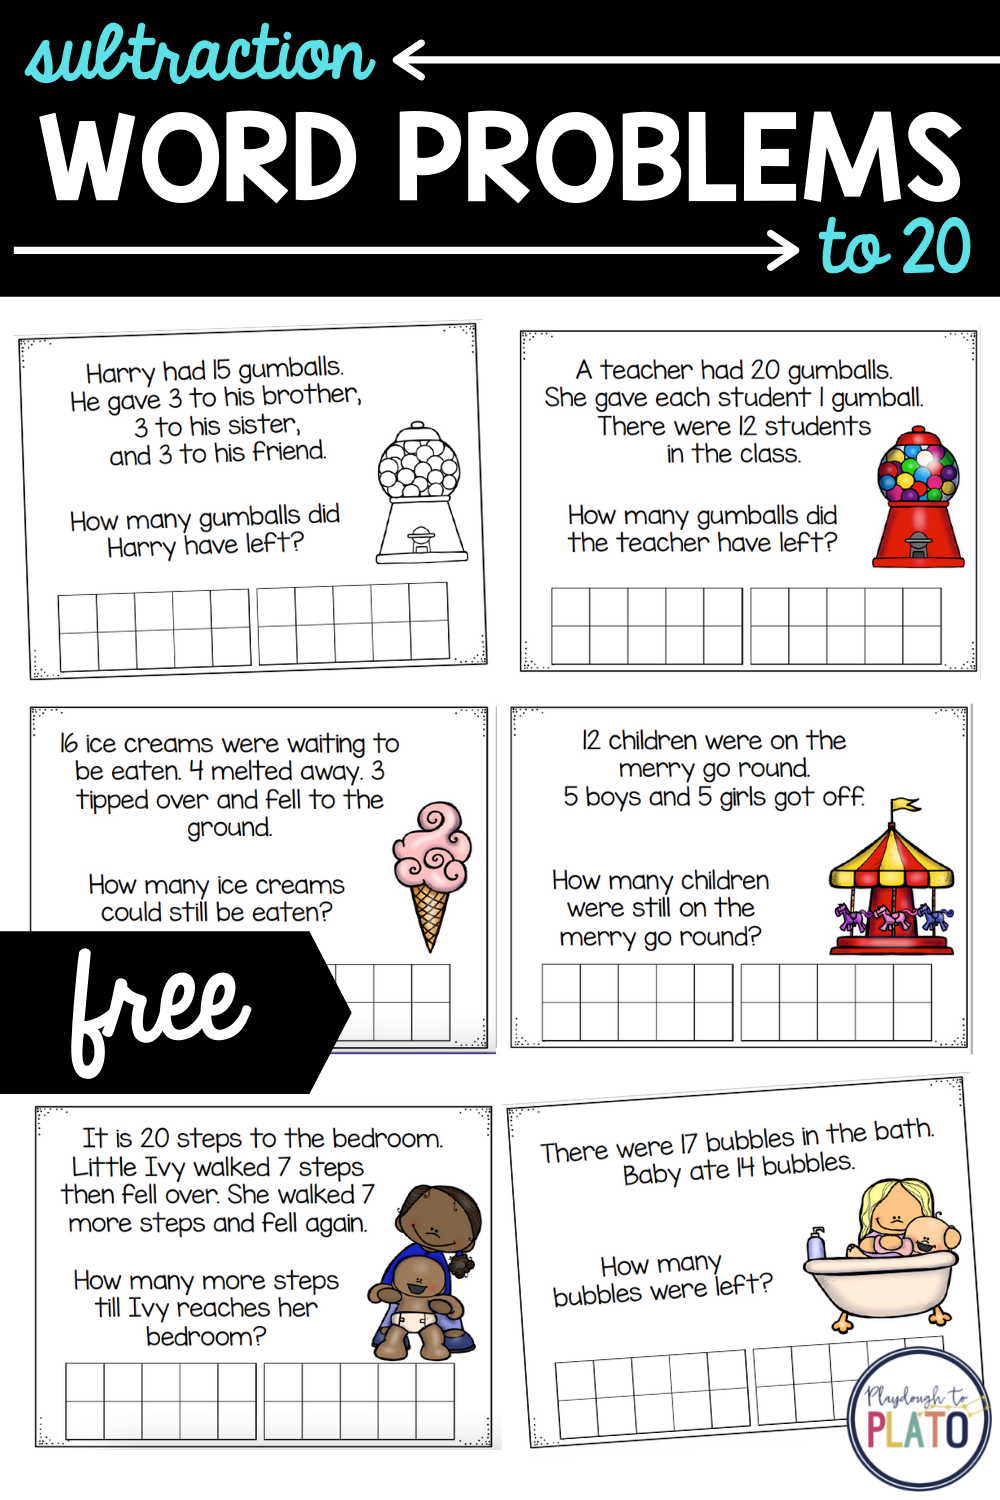 Subtraction Word Problems to 20